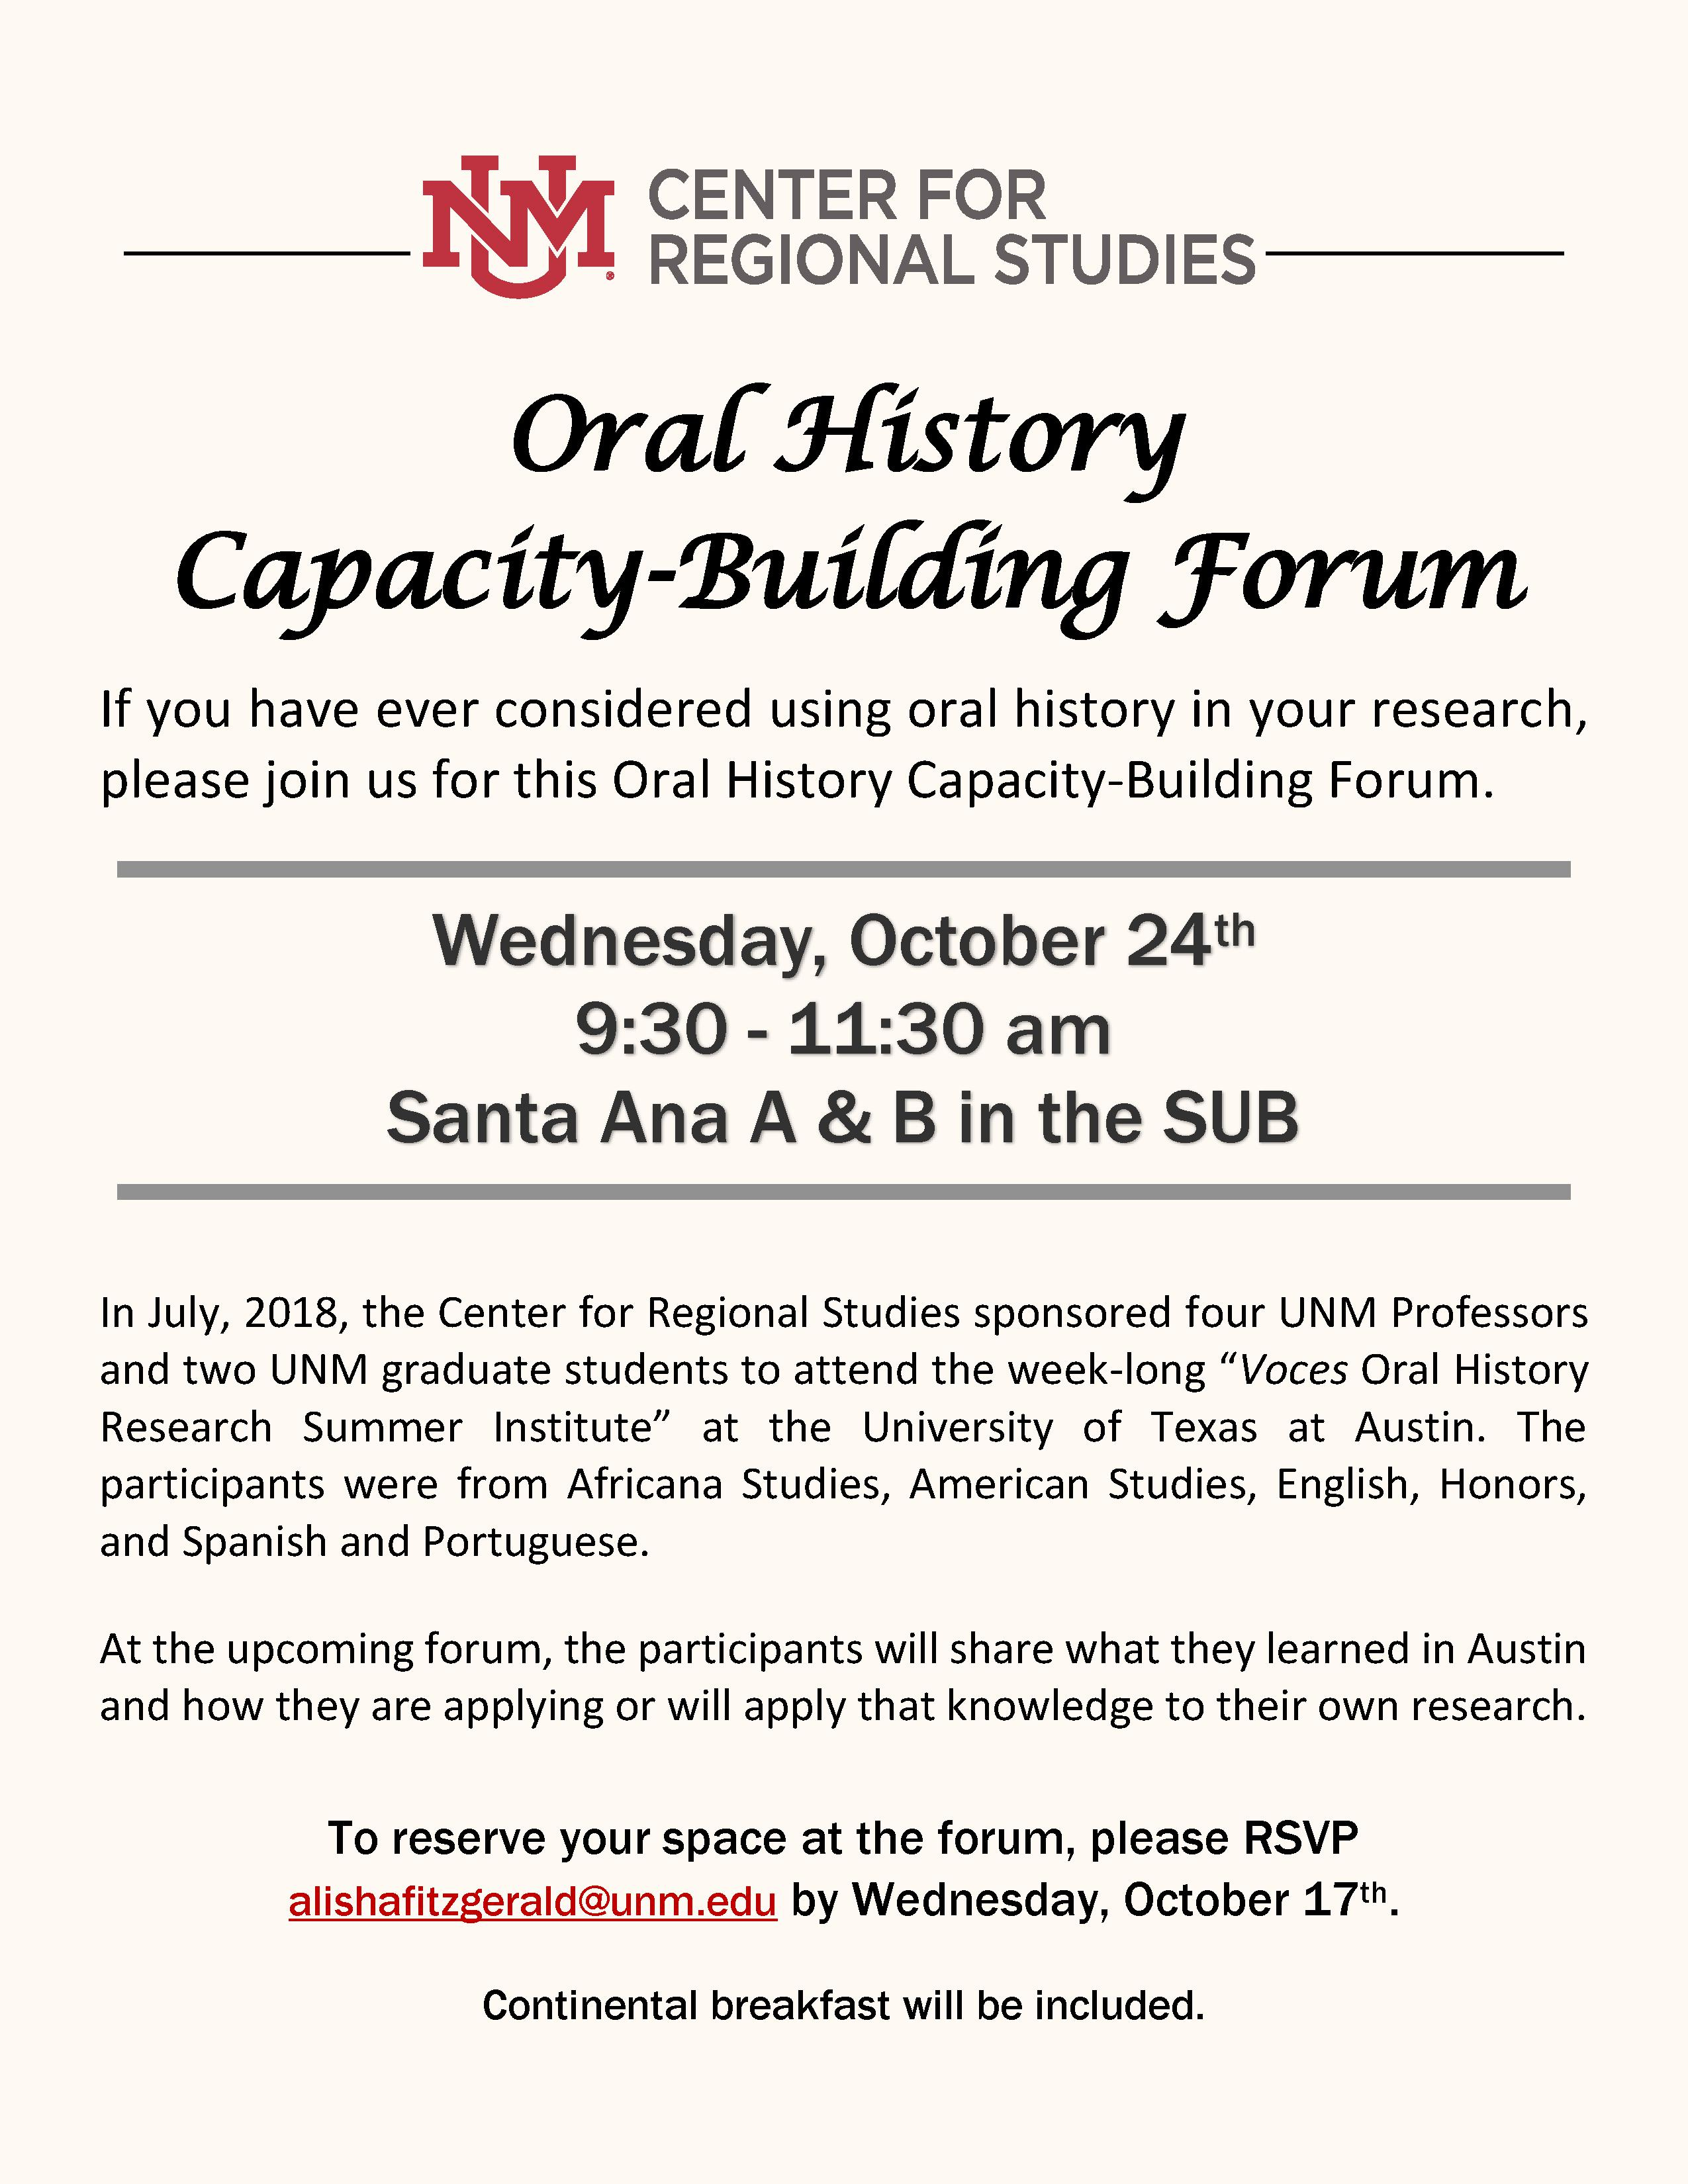 Oral History Capacity-Building Forum Flyer